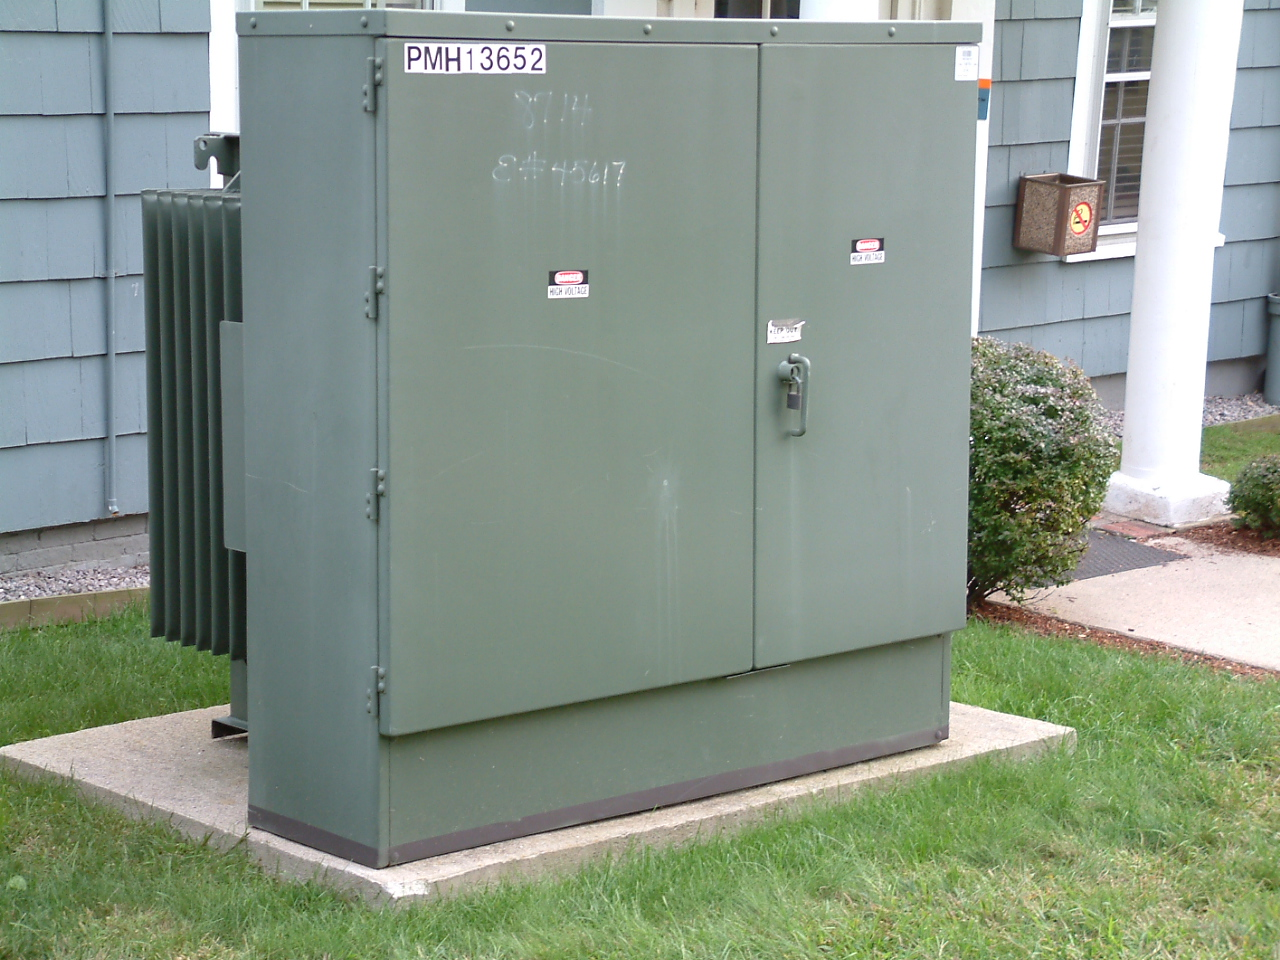 high voltage currents cartoon lover and everything wikia 500kva three phase pad mount transformer at a school